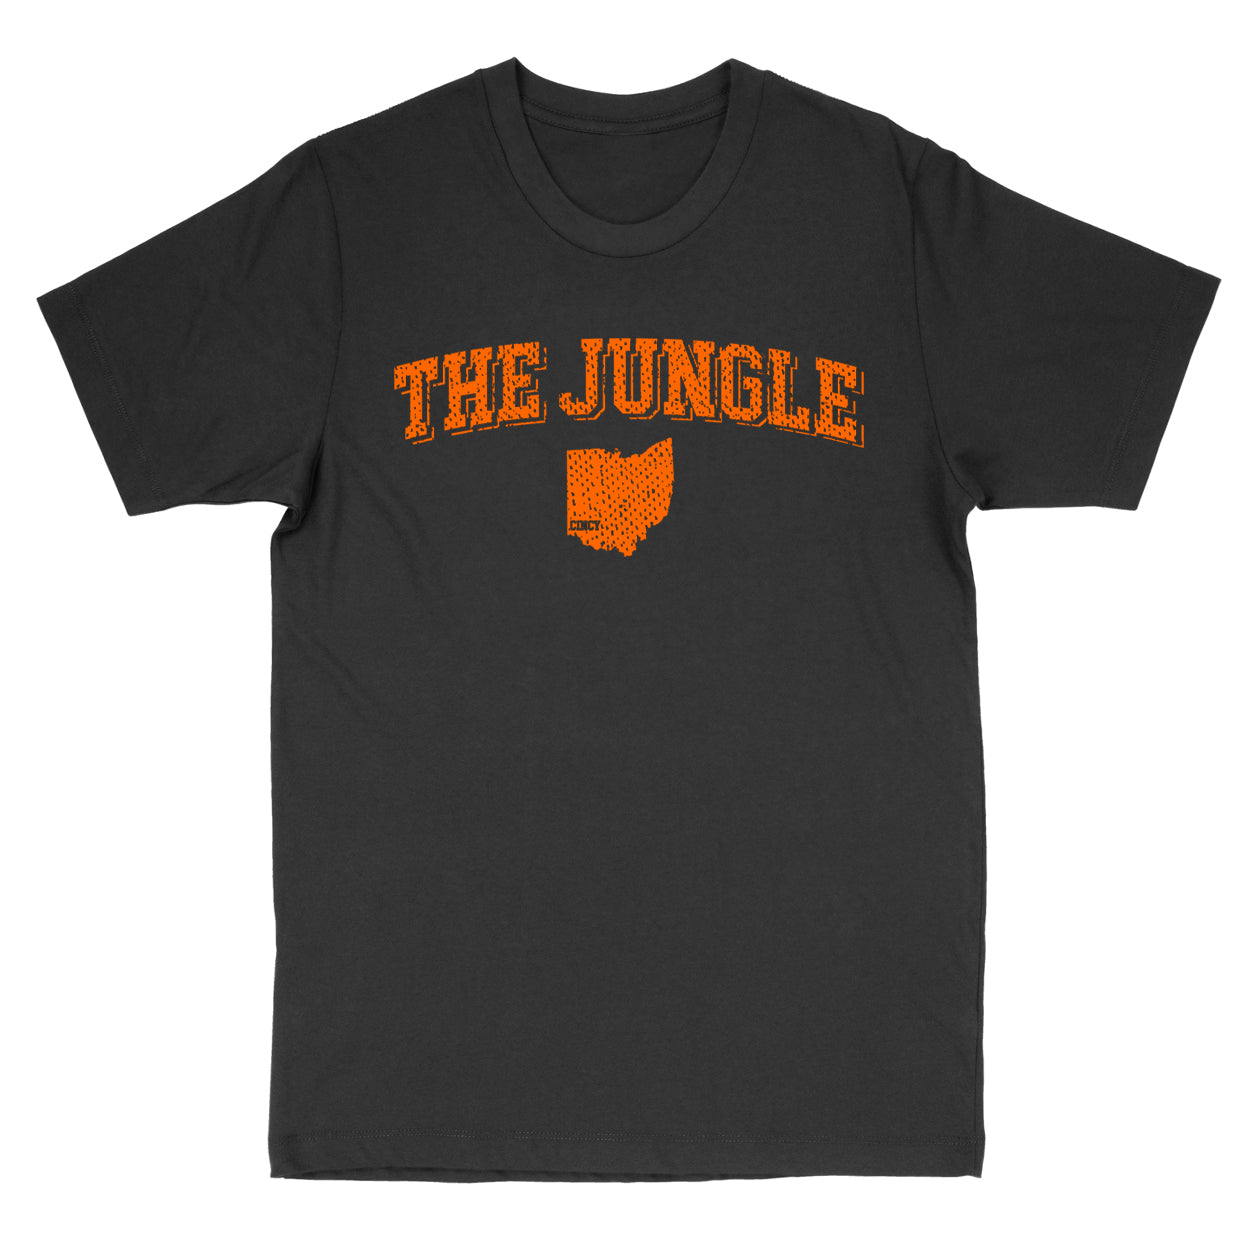 The Jungle Men's T-Shirt - Clothe Ohio - Soft Ohio Shirts